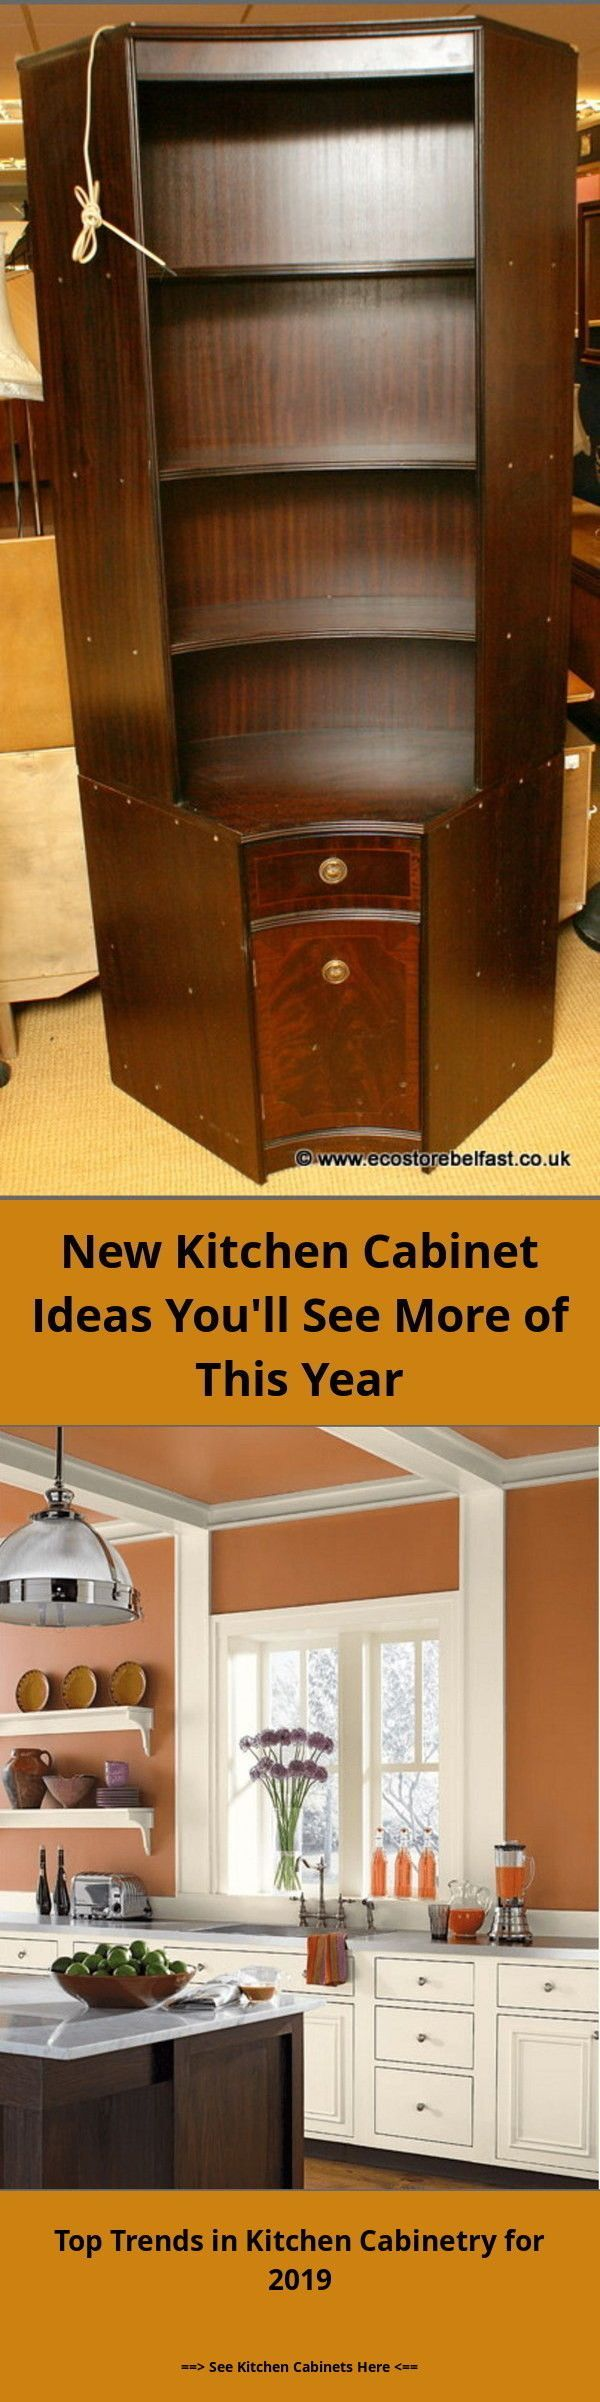 Your next diy project: kitchen cabinet organizers and diy refinishing kitchen cabinets video. top of #cabinetorganizers Your next diy project: kitchen cabinet organizers and diy refinishing kitchen cabinets video. top of #cabinetorganizers